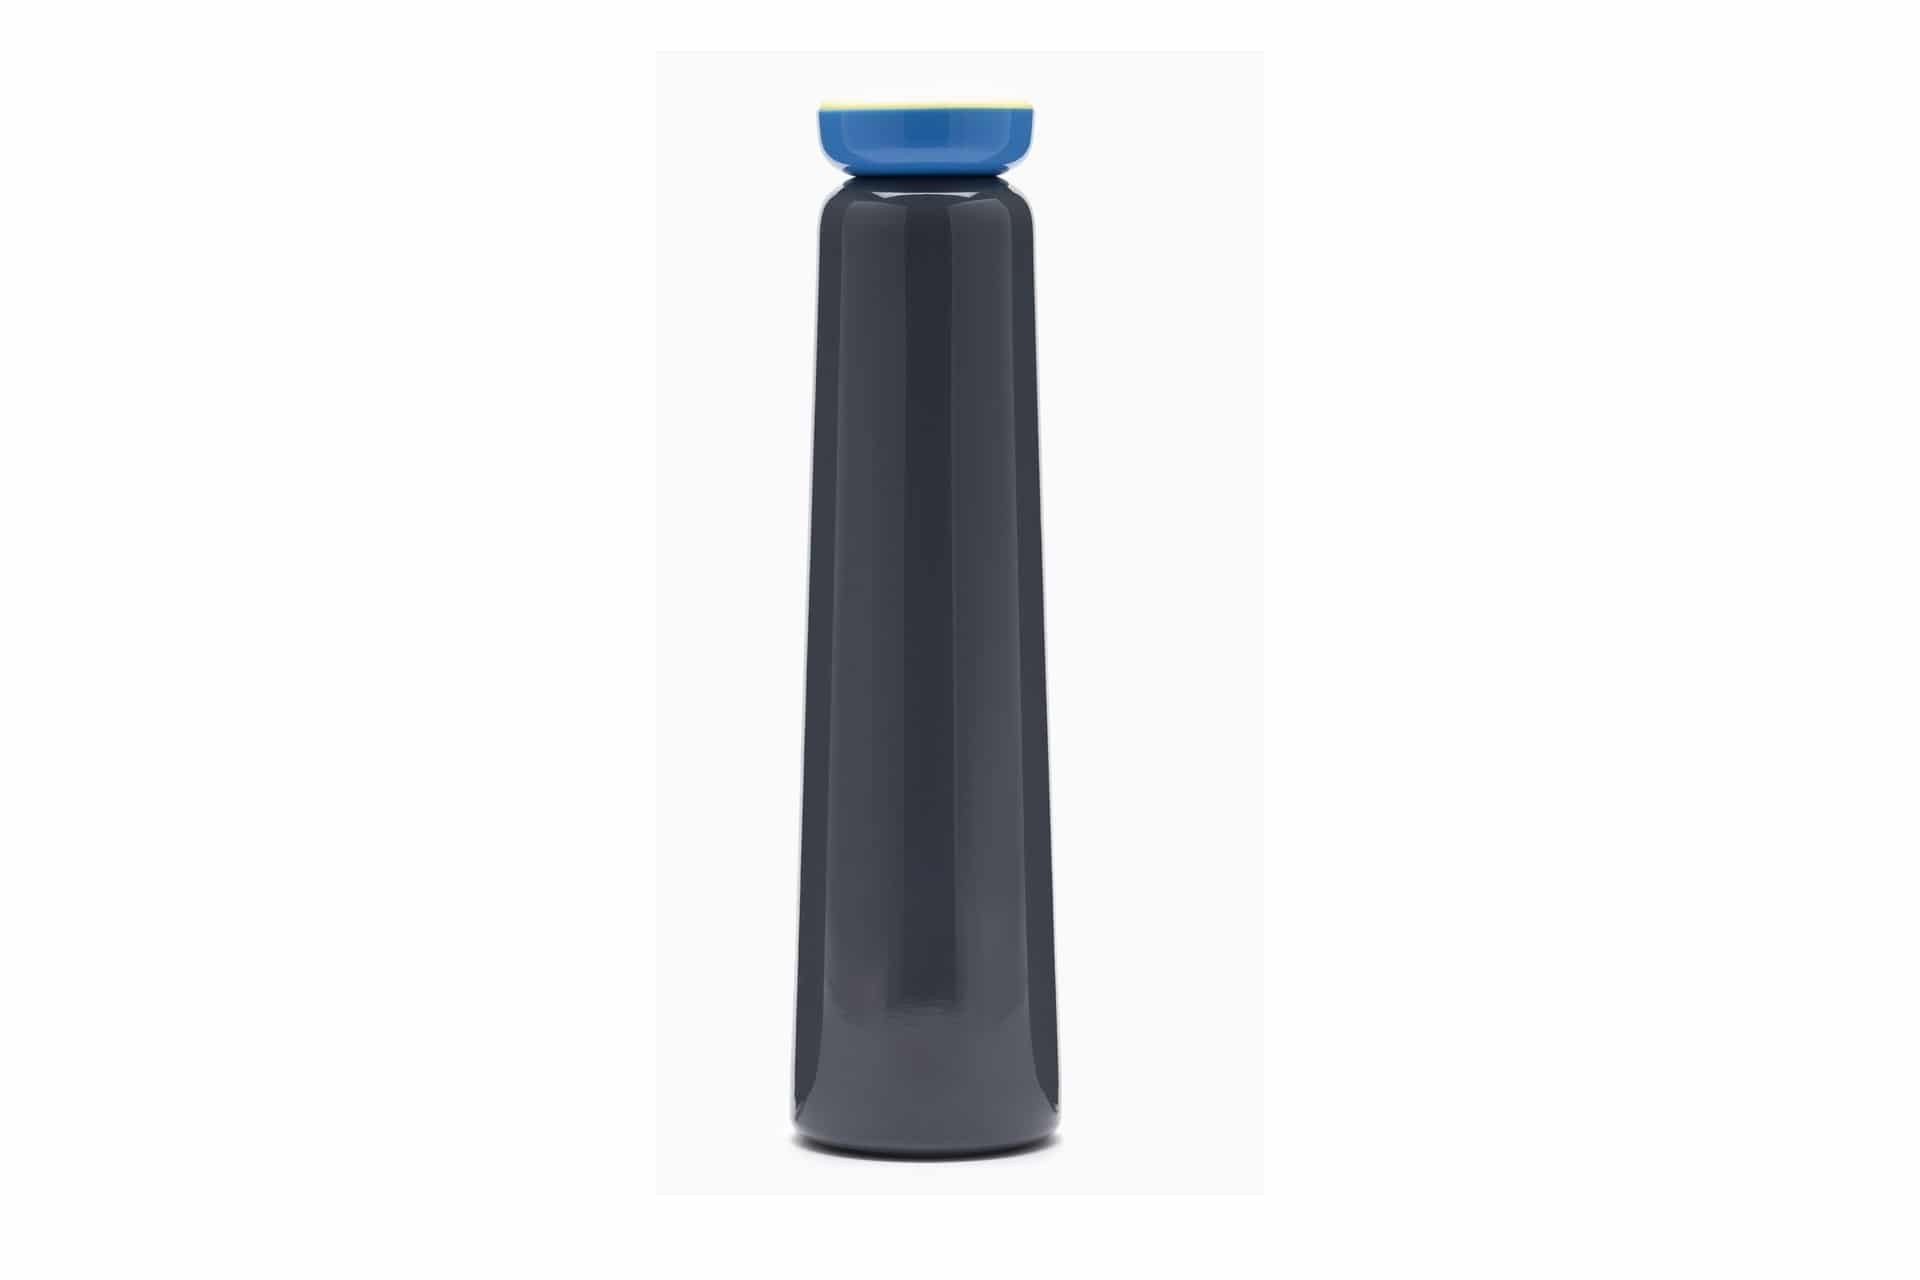 Blue and grey water bottle